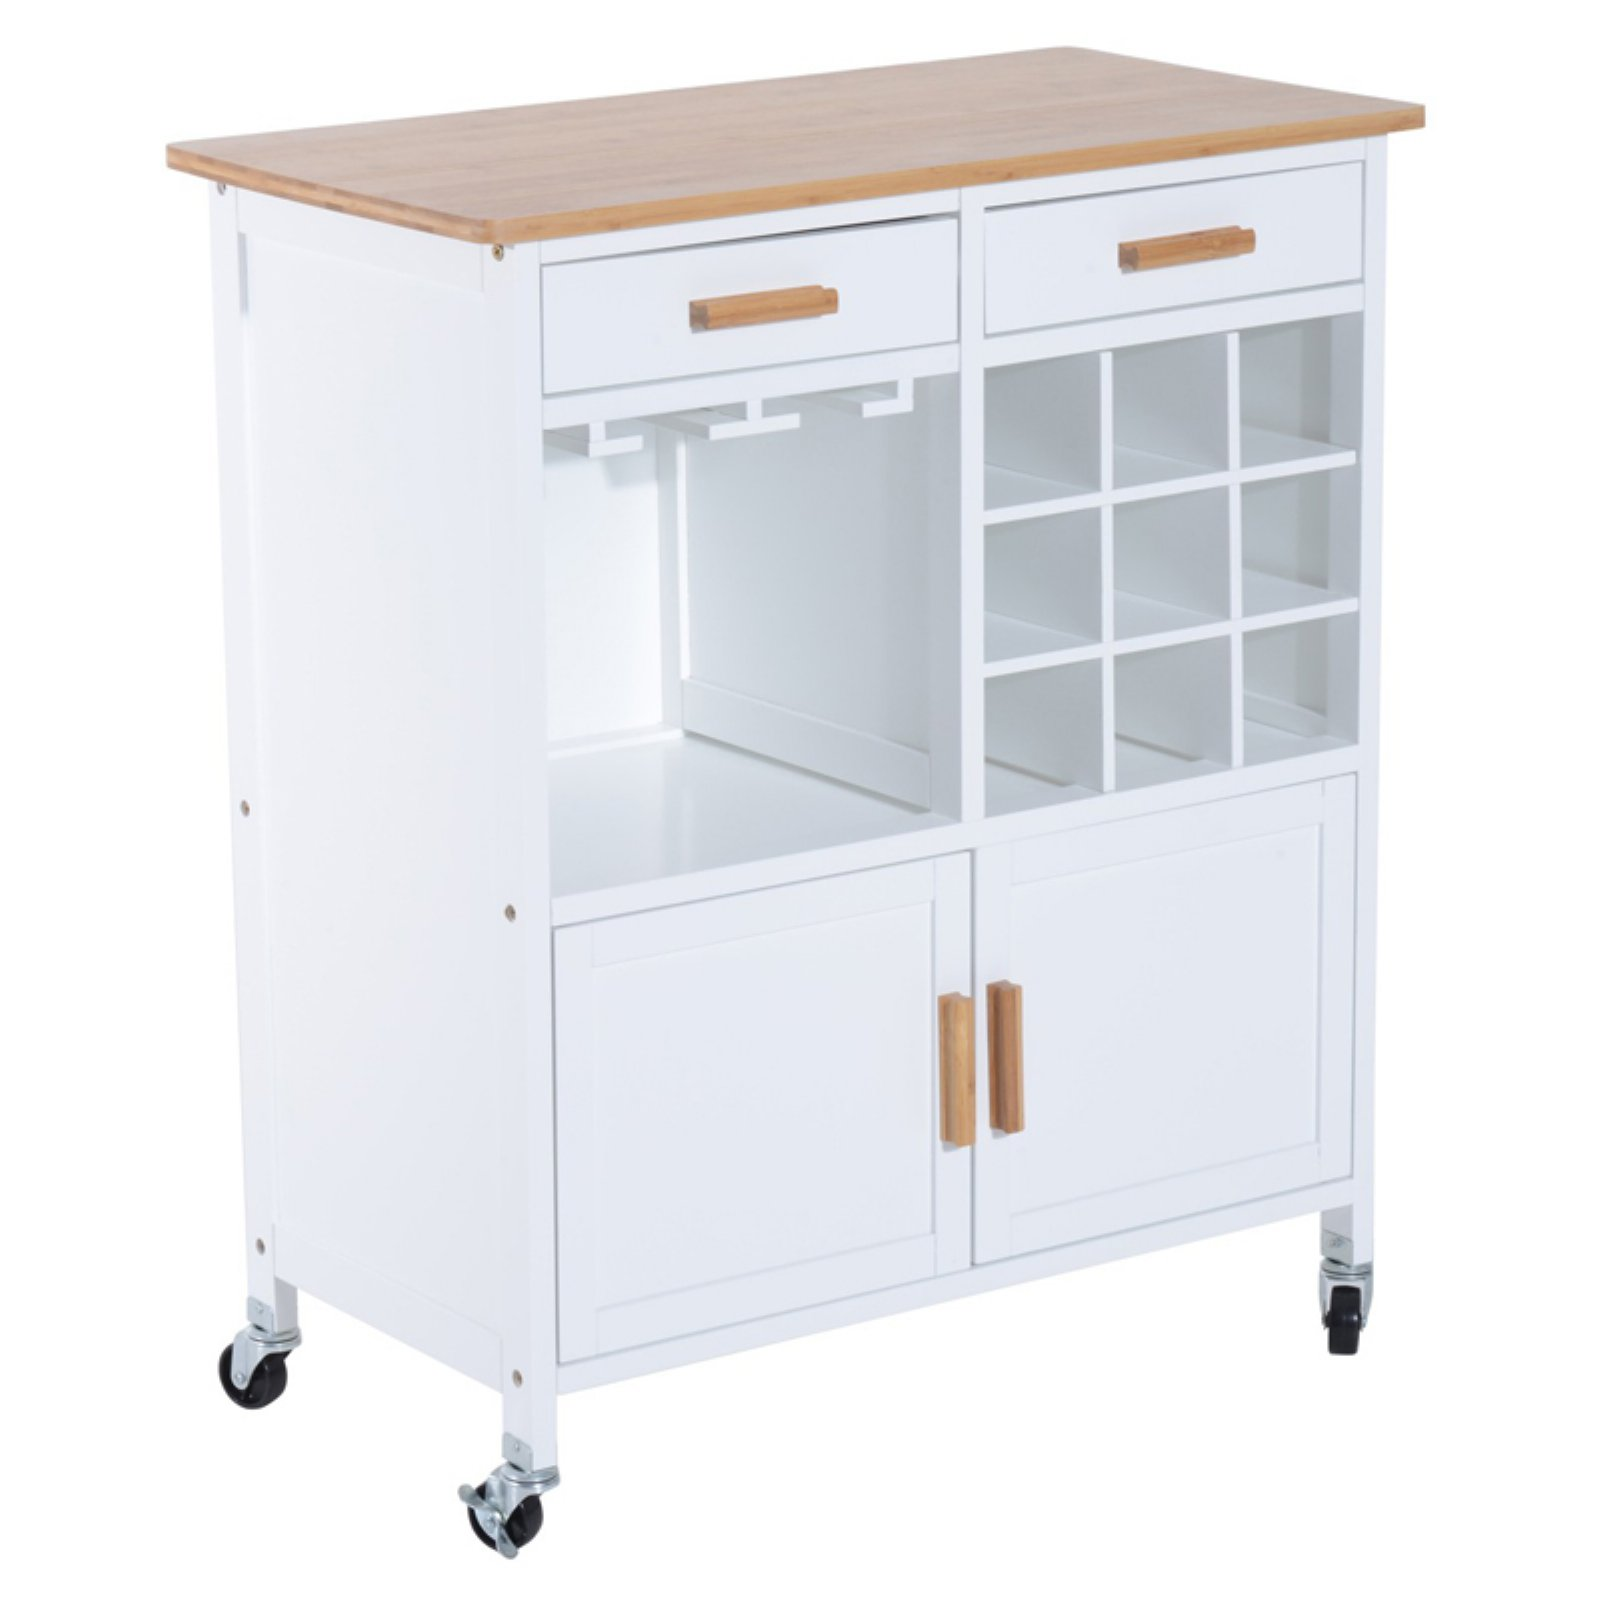 HomCom 35 in. Rolling Kitchen Trolley Serving Cart with Wine Rack ...